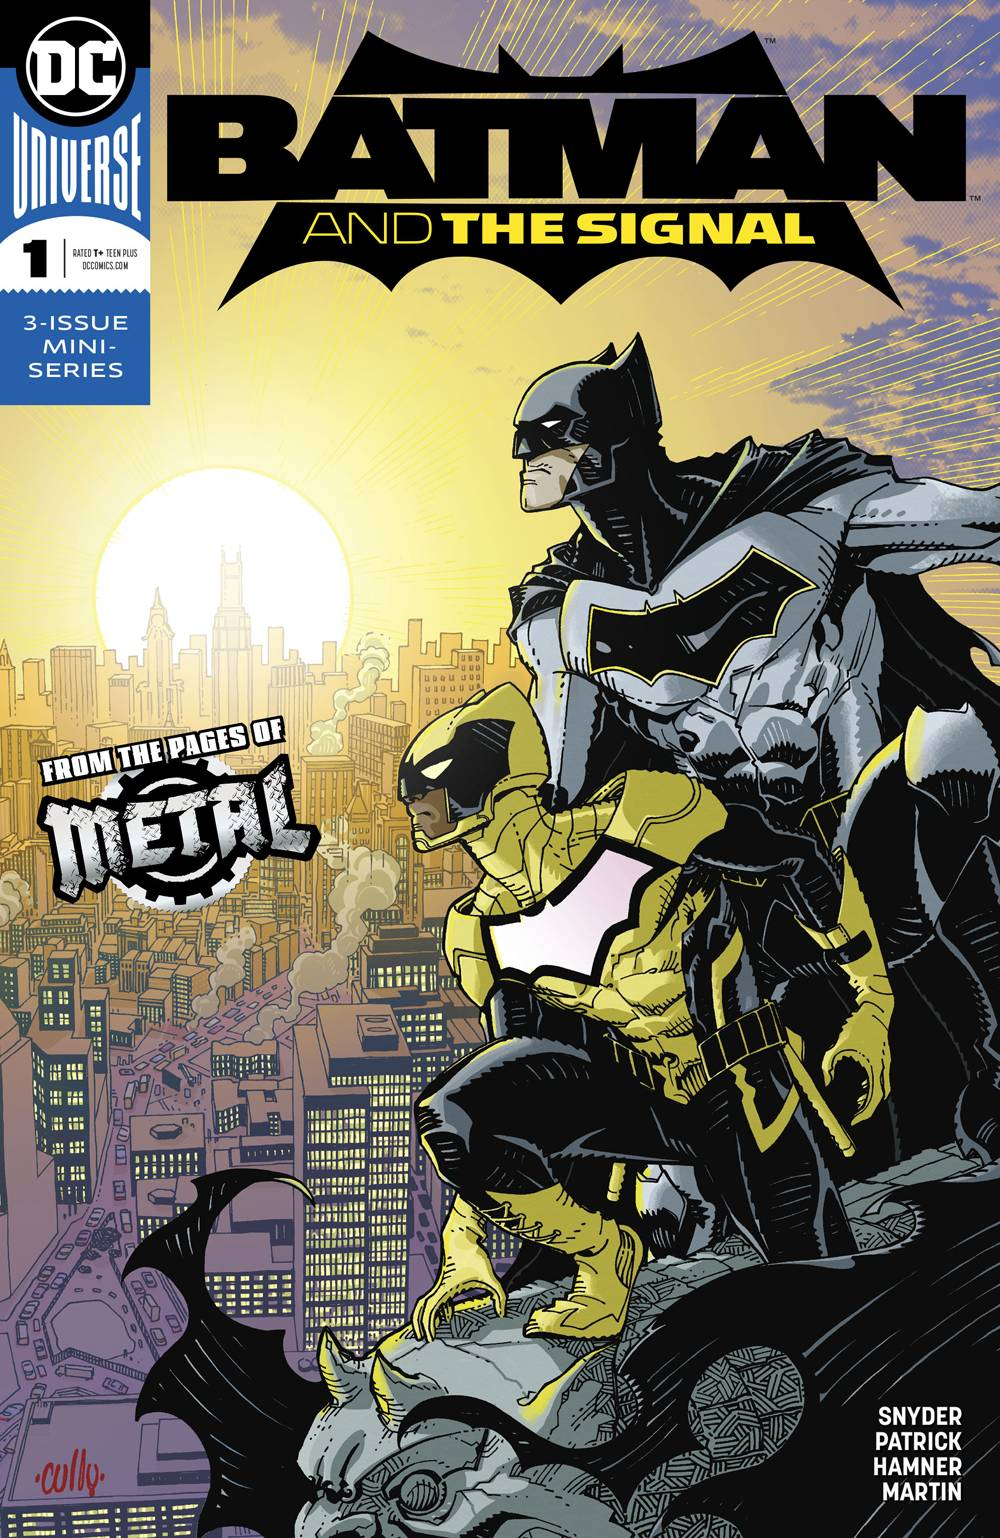 BATMAN AND THE SIGNAL 1 of 3.jpg